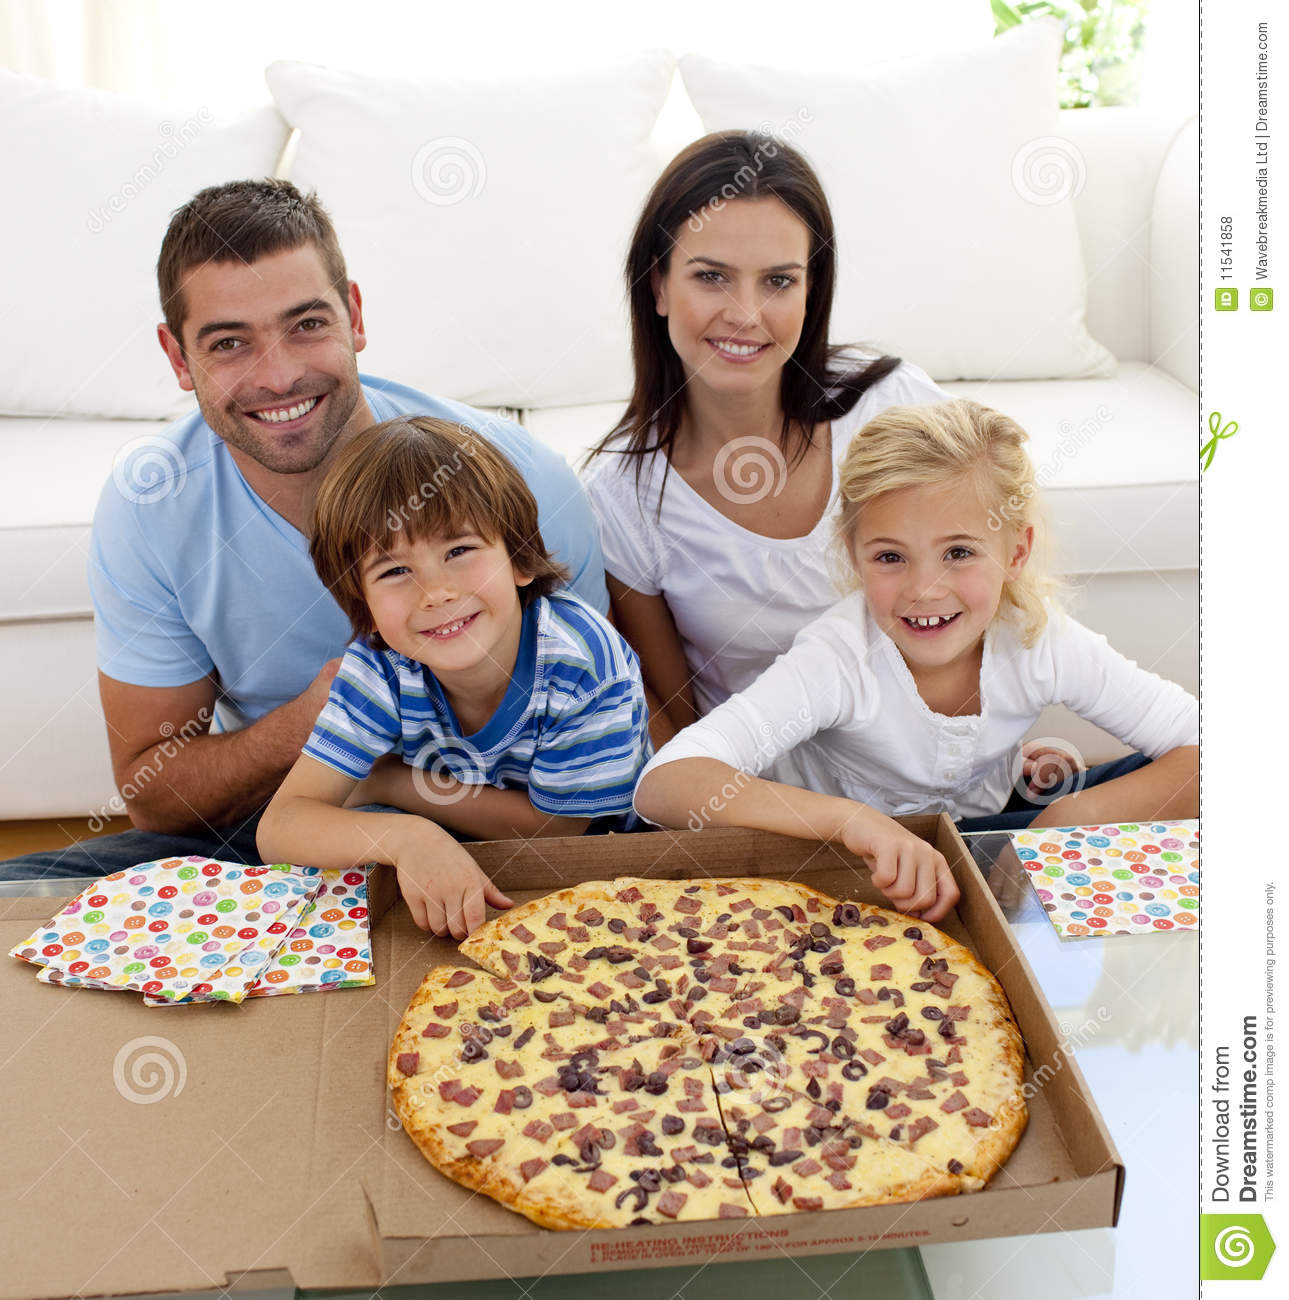 family eating pizza on sofa stock photo image of colour indoors 11541858. Black Bedroom Furniture Sets. Home Design Ideas